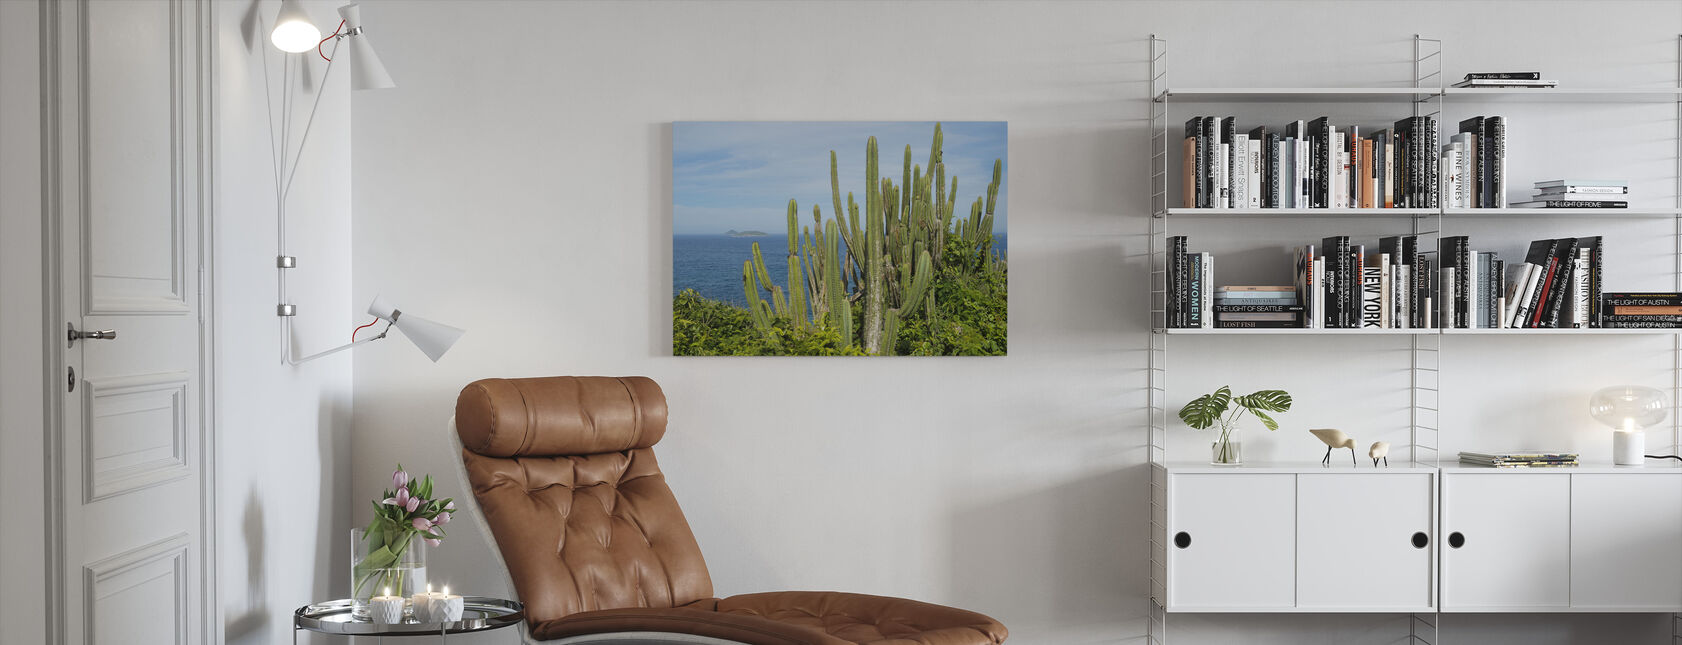 Cactus with a View - Canvas print - Living Room